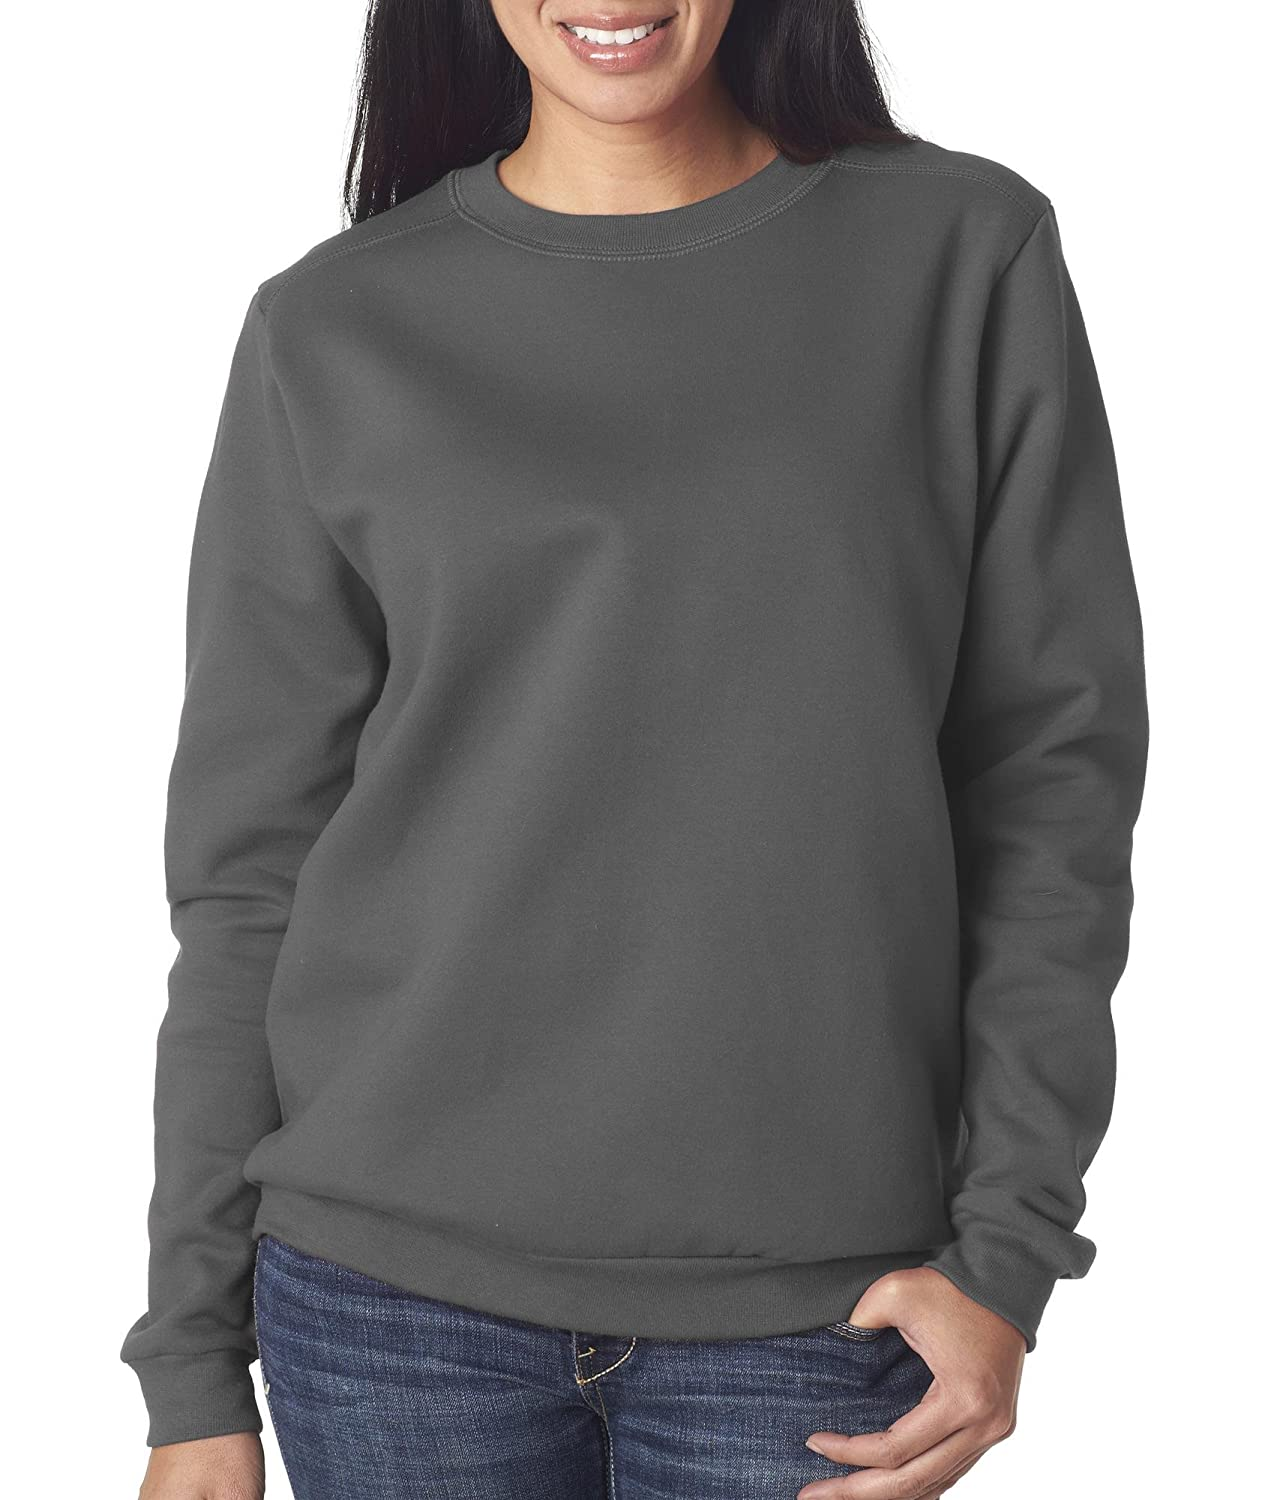 Find girls crew neck sweater at ShopStyle. Shop the latest collection of girls crew neck sweater from the most popular stores - all in one place.